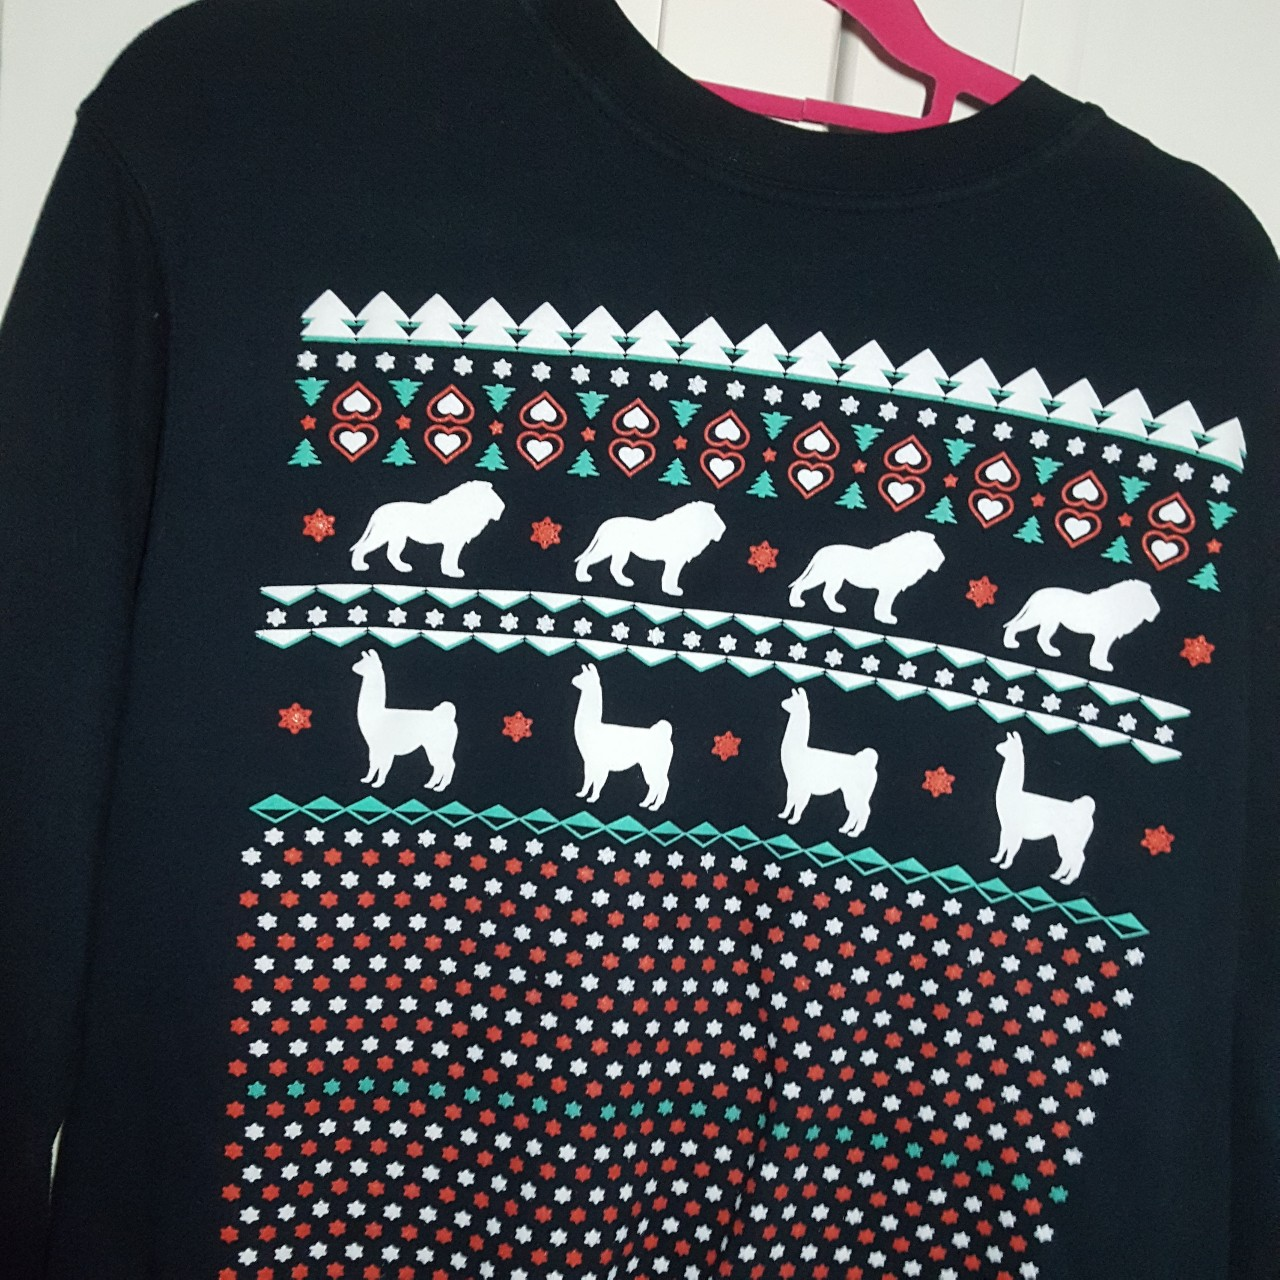 Dan And Phil Christmas Sweater.Dan And Phil Christmas Sweater Bought For 20 Depop